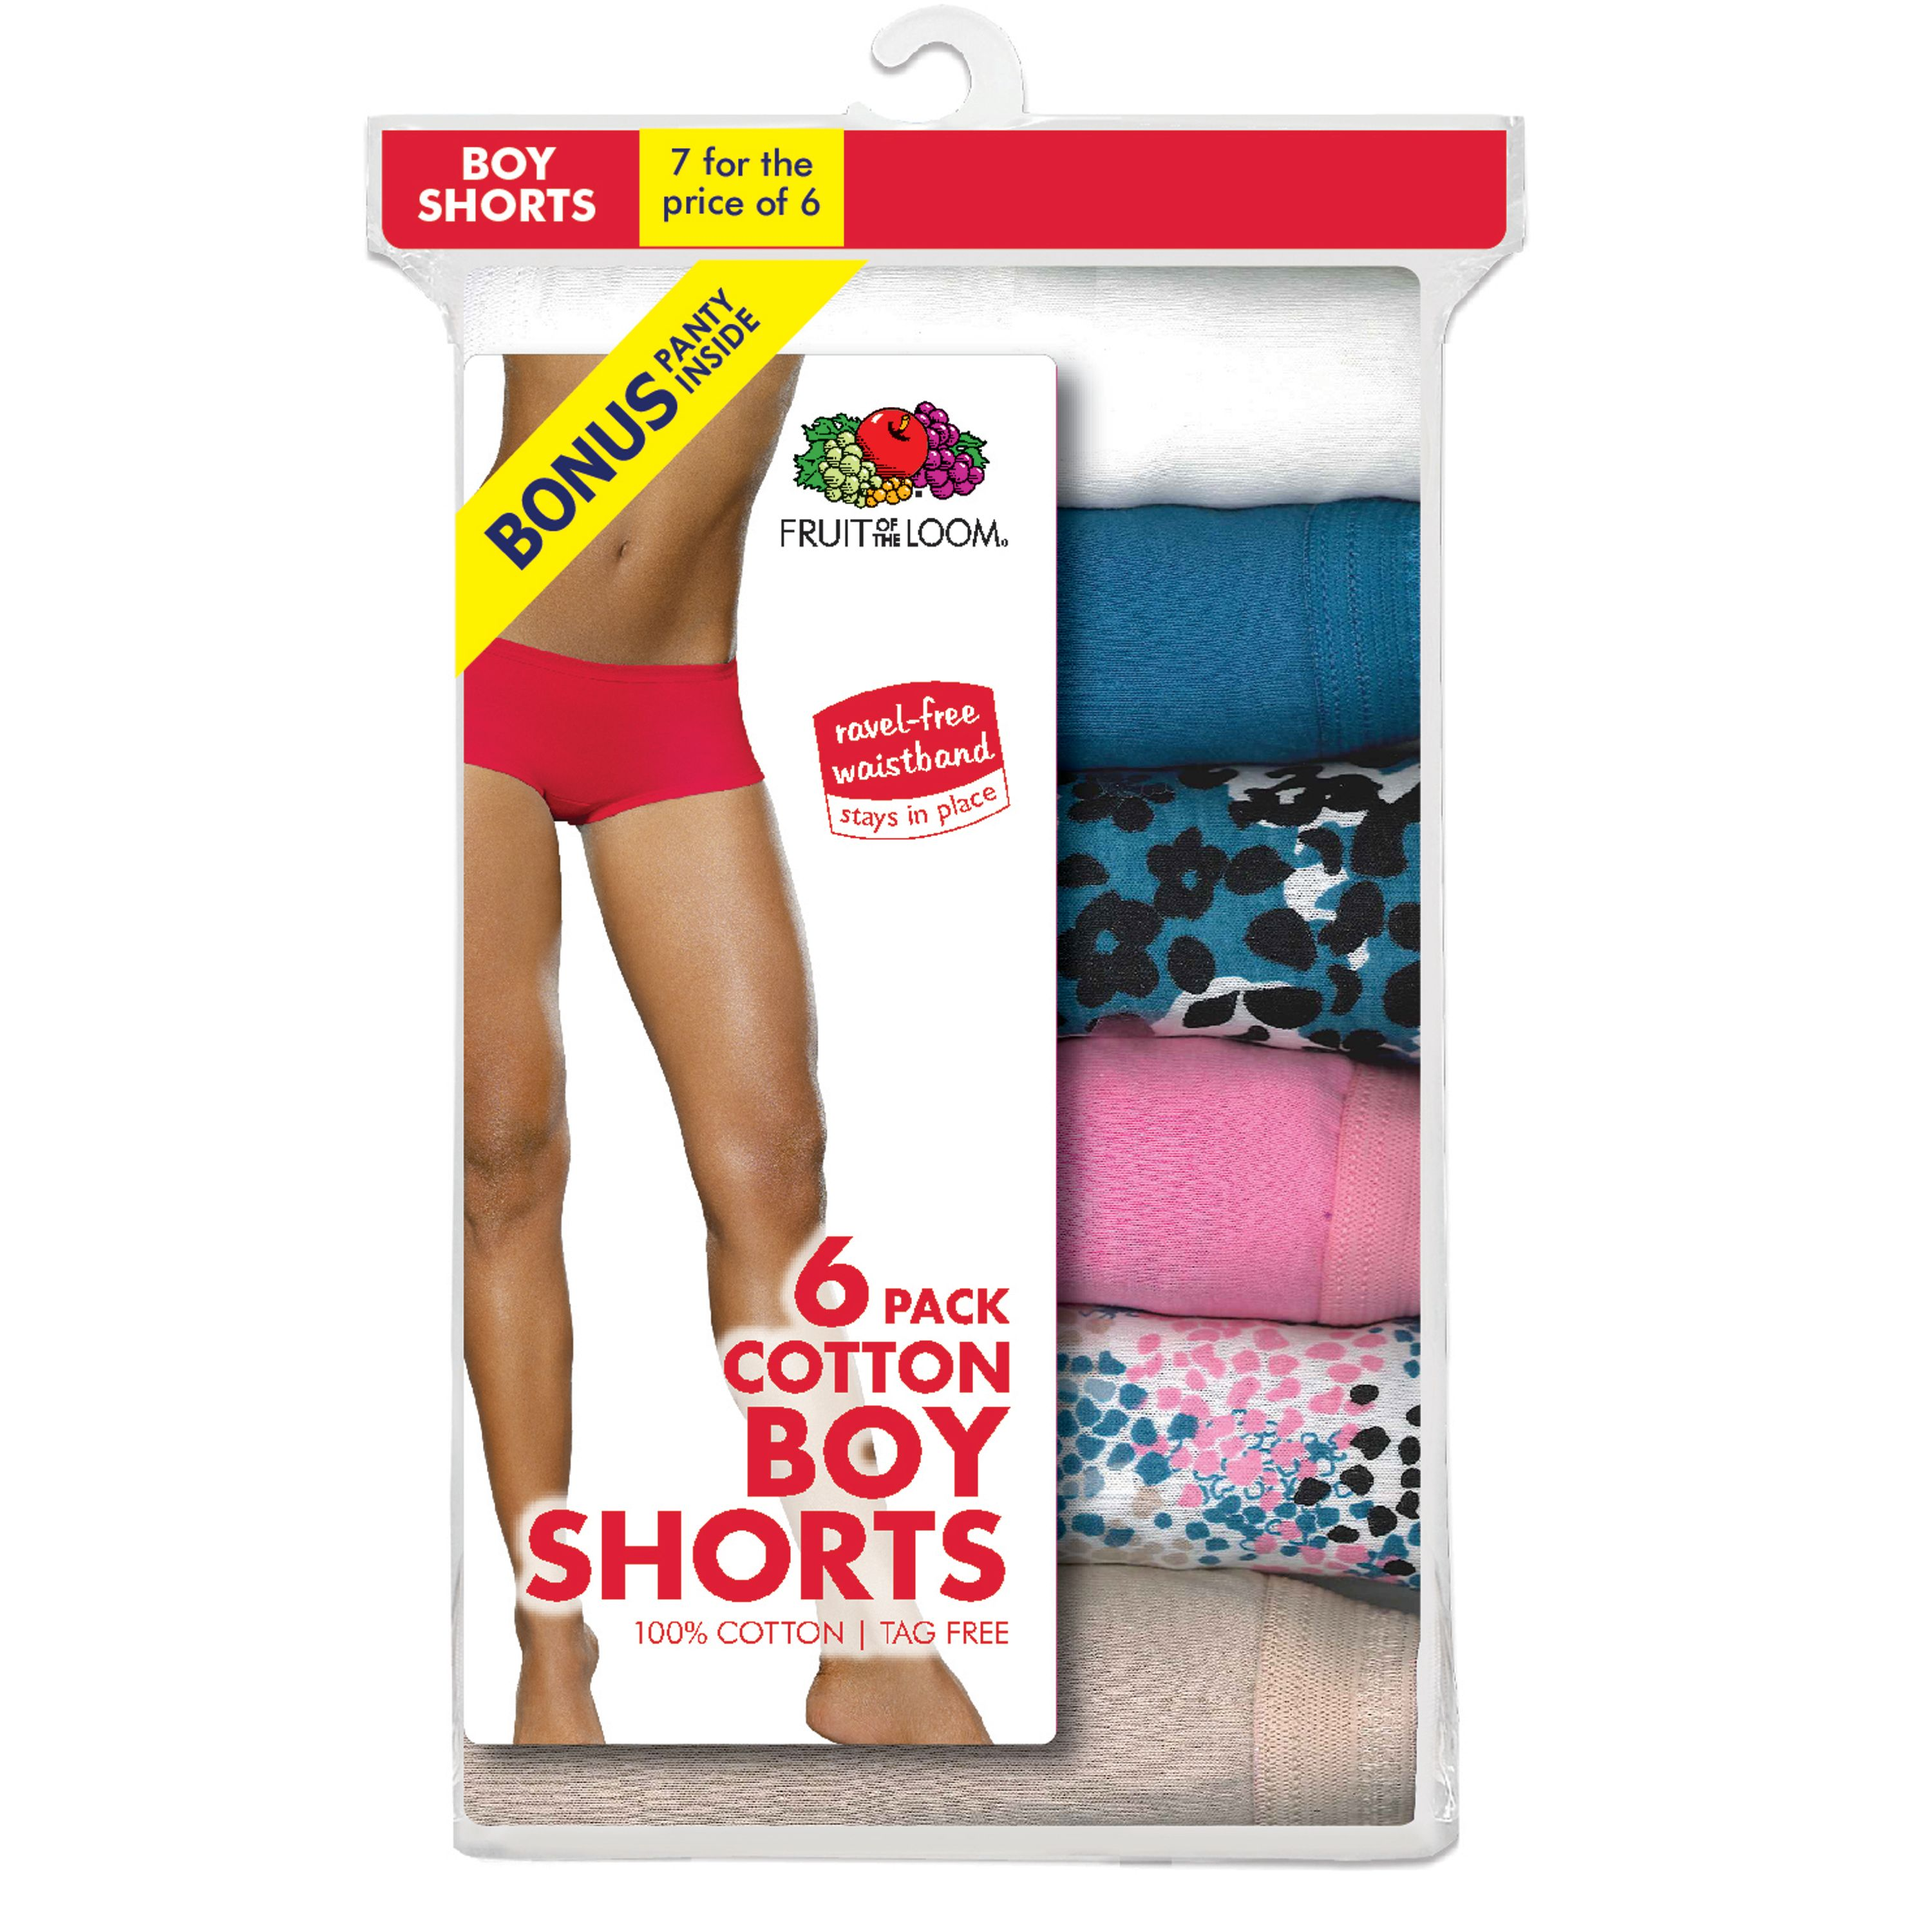 Ladies' Assorted Color Cotton Boy Shorts, 6+1 Bonus Pack